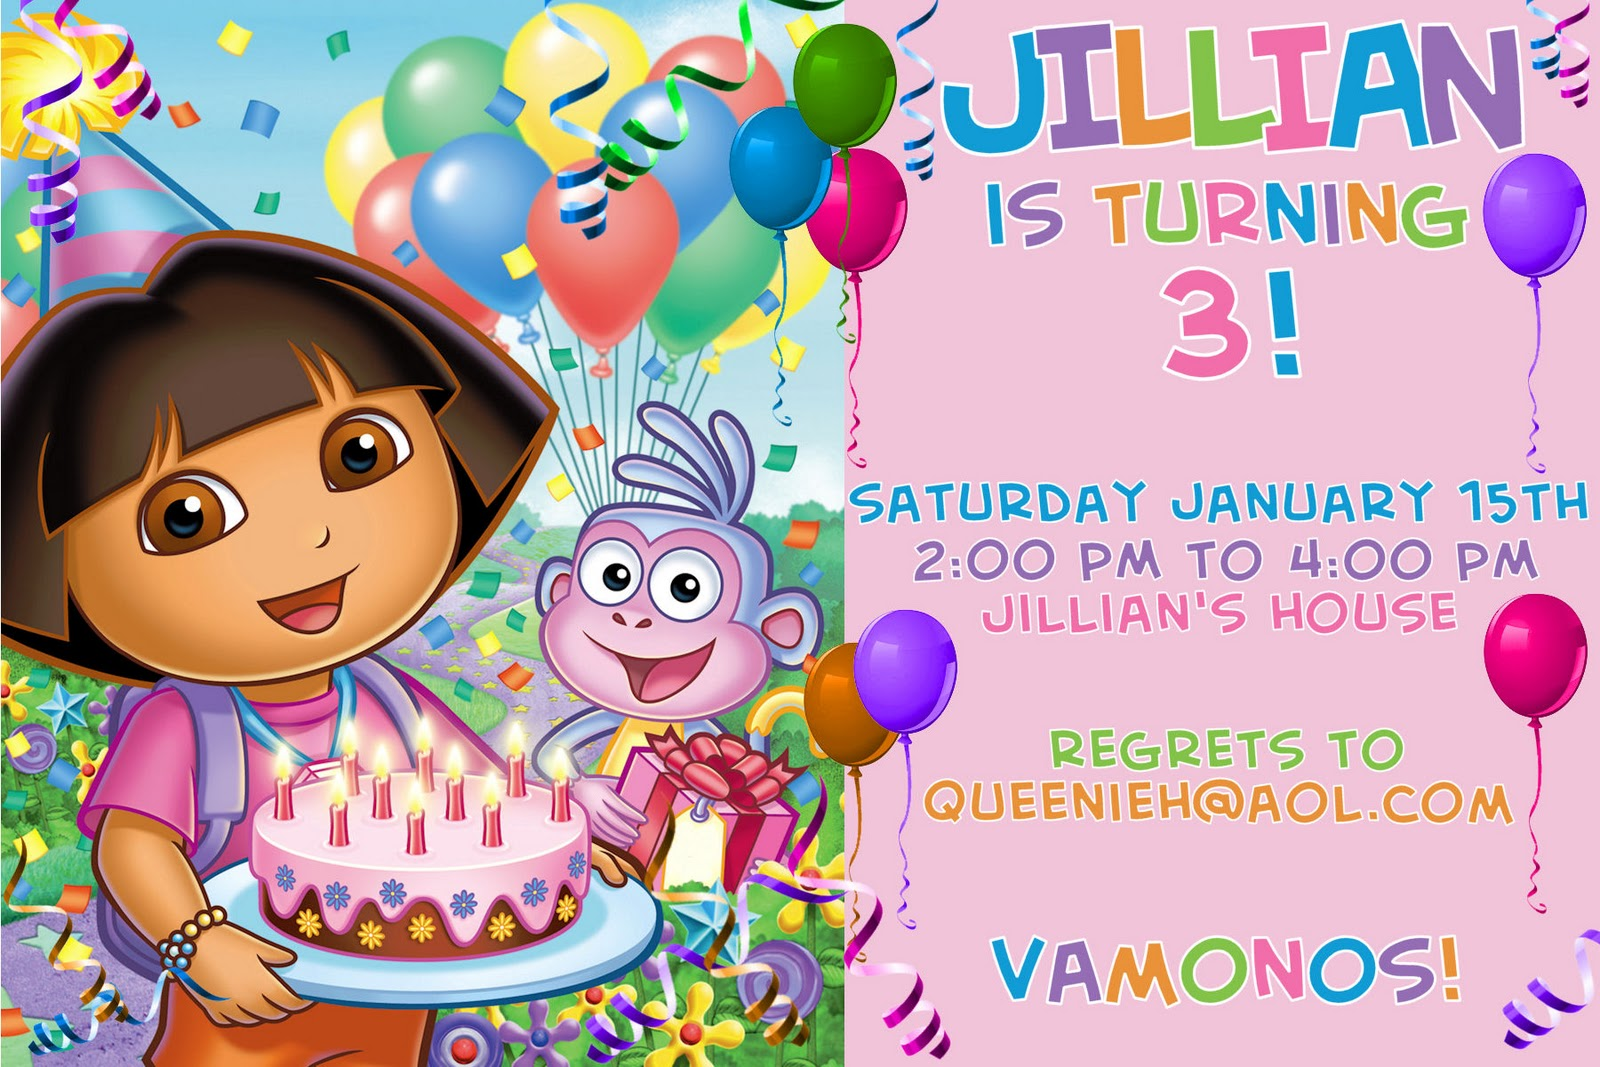 Kids birthday party invitation card ideas for your child special day designs on card bookmarktalkfo